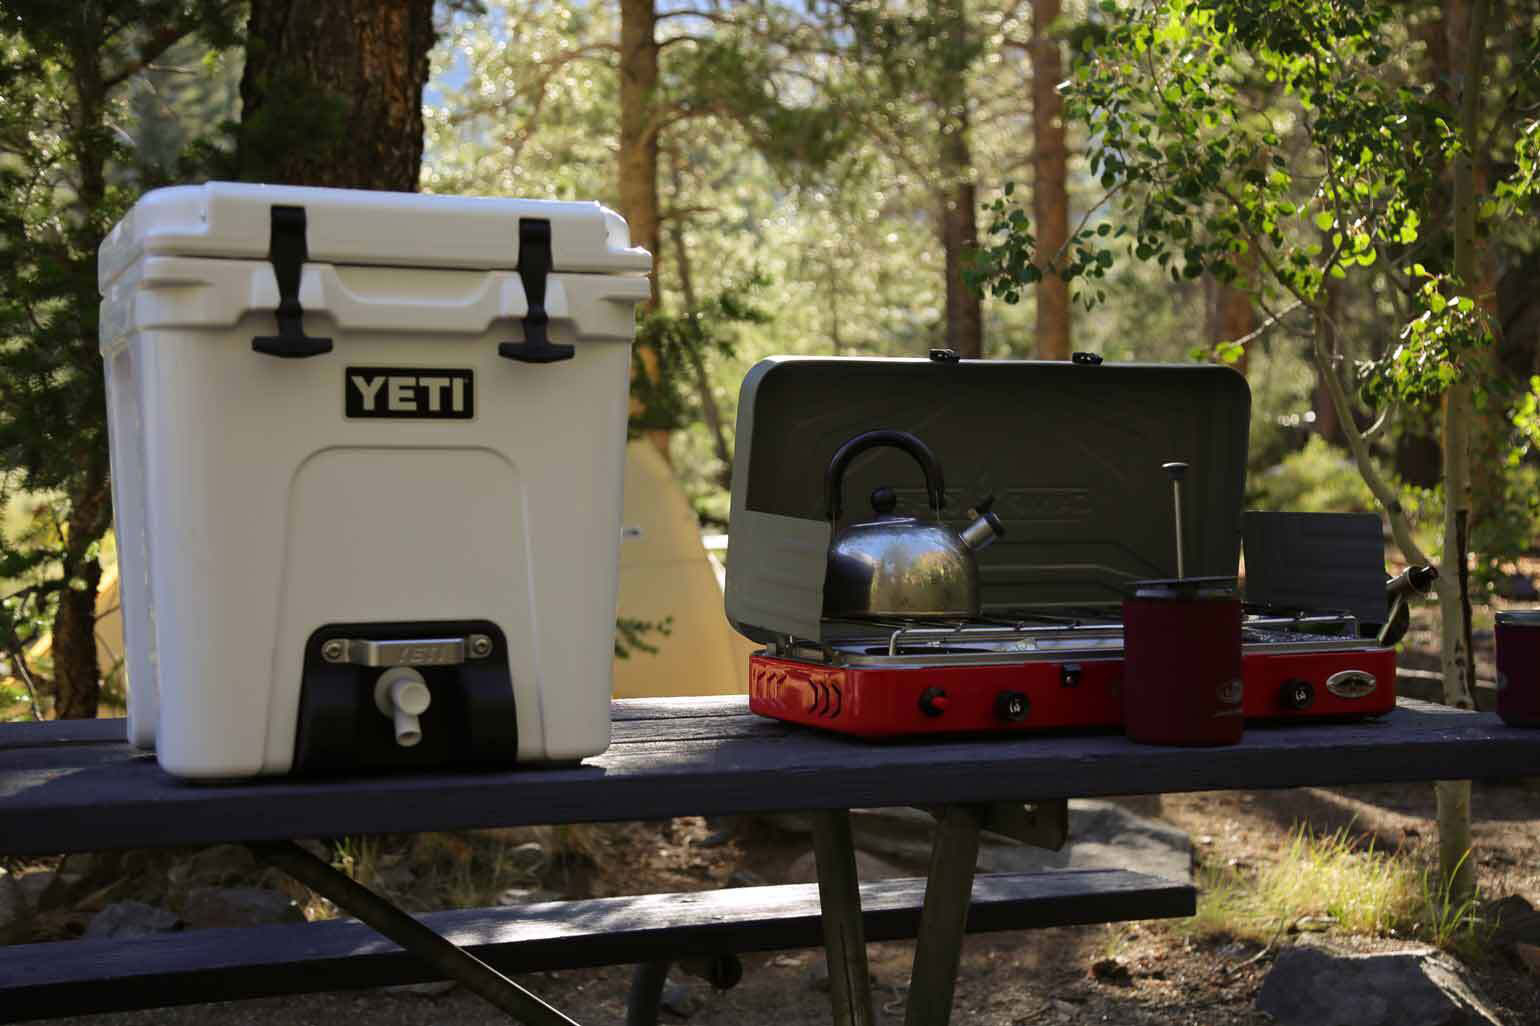 picnic table in the woods with yeti cooler, campfire stove, and camping equipment